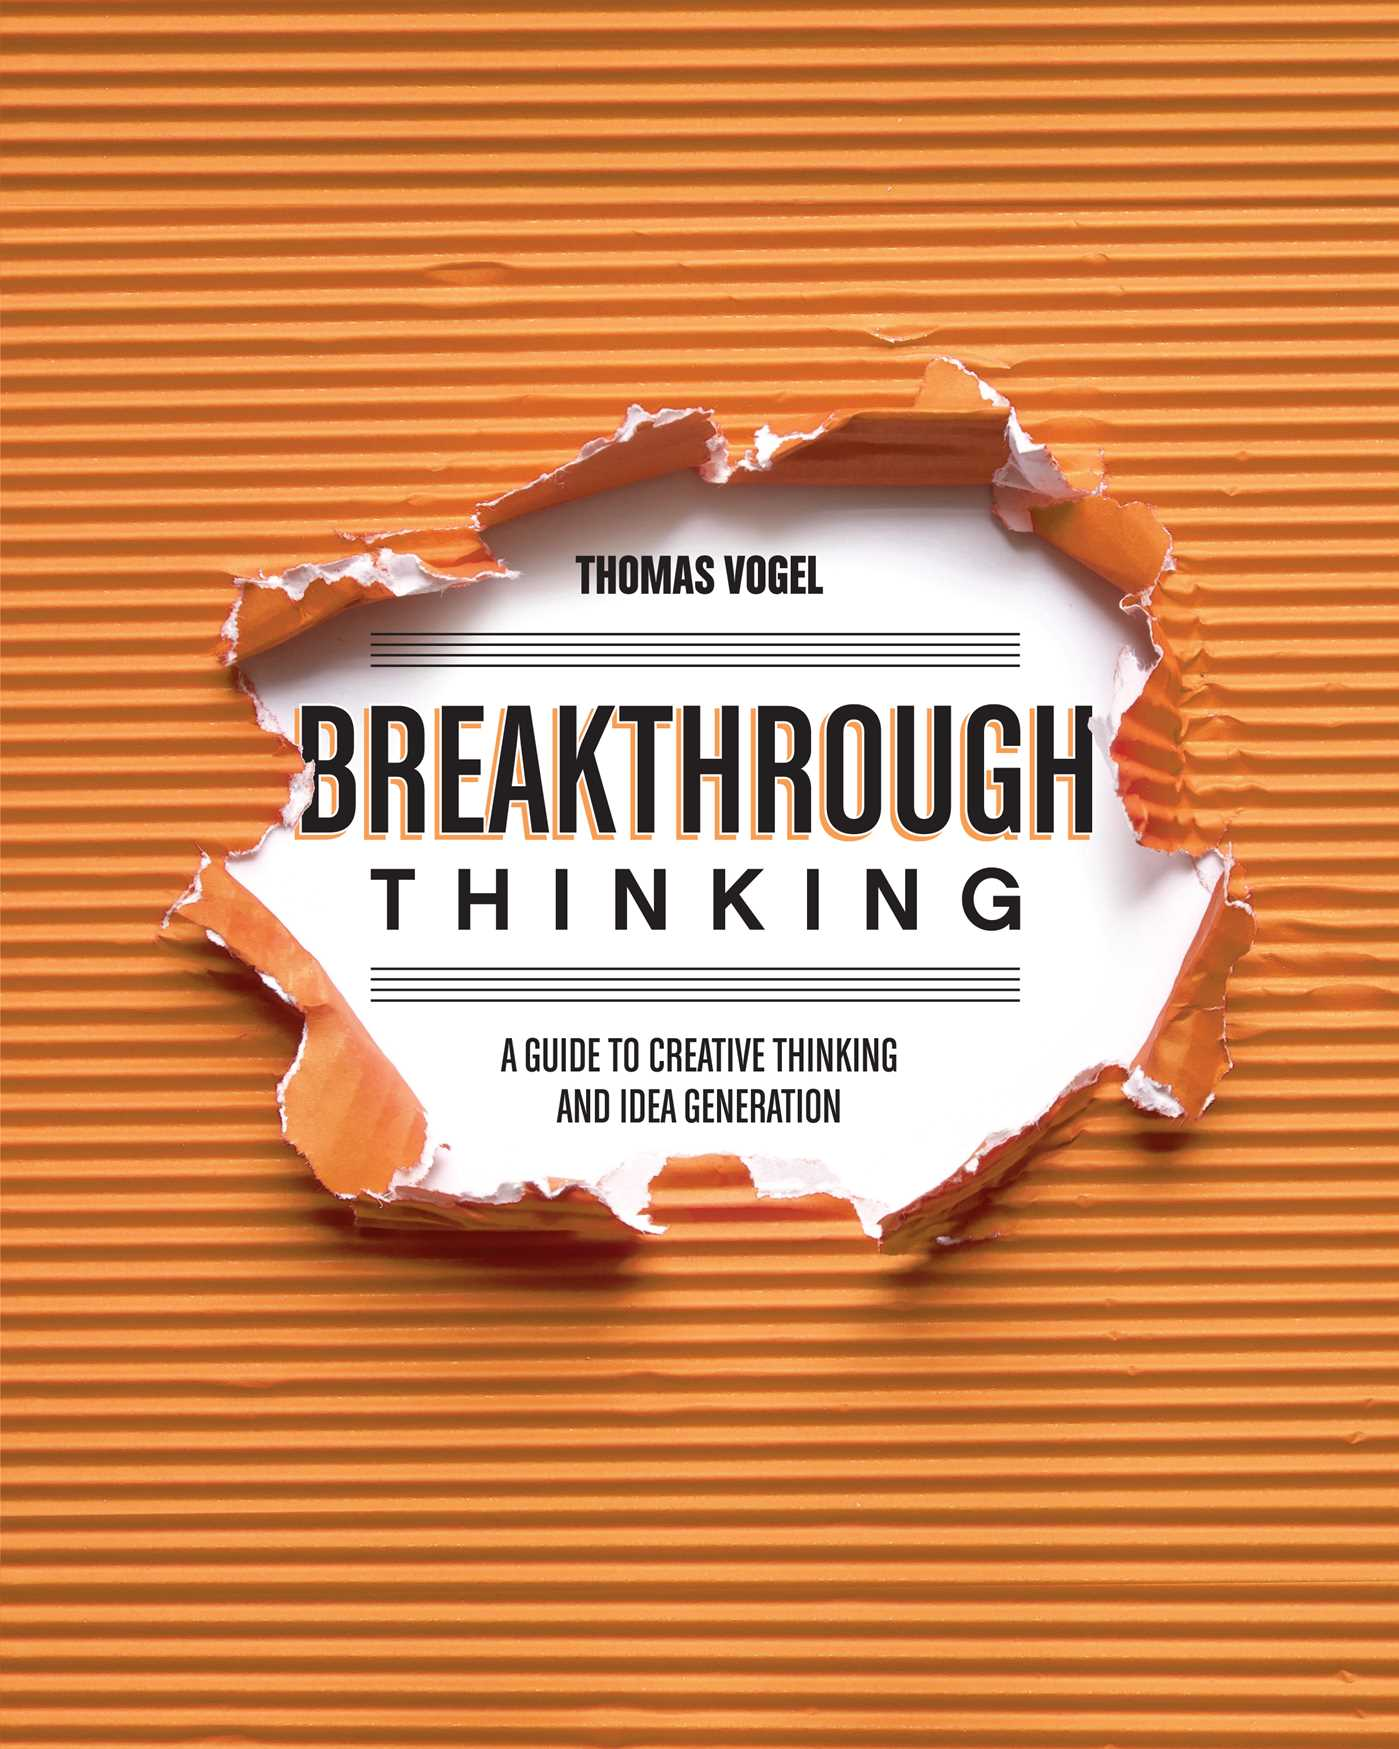 Download Ebook Breakthrough Thinking by Thomas Vogel Pdf